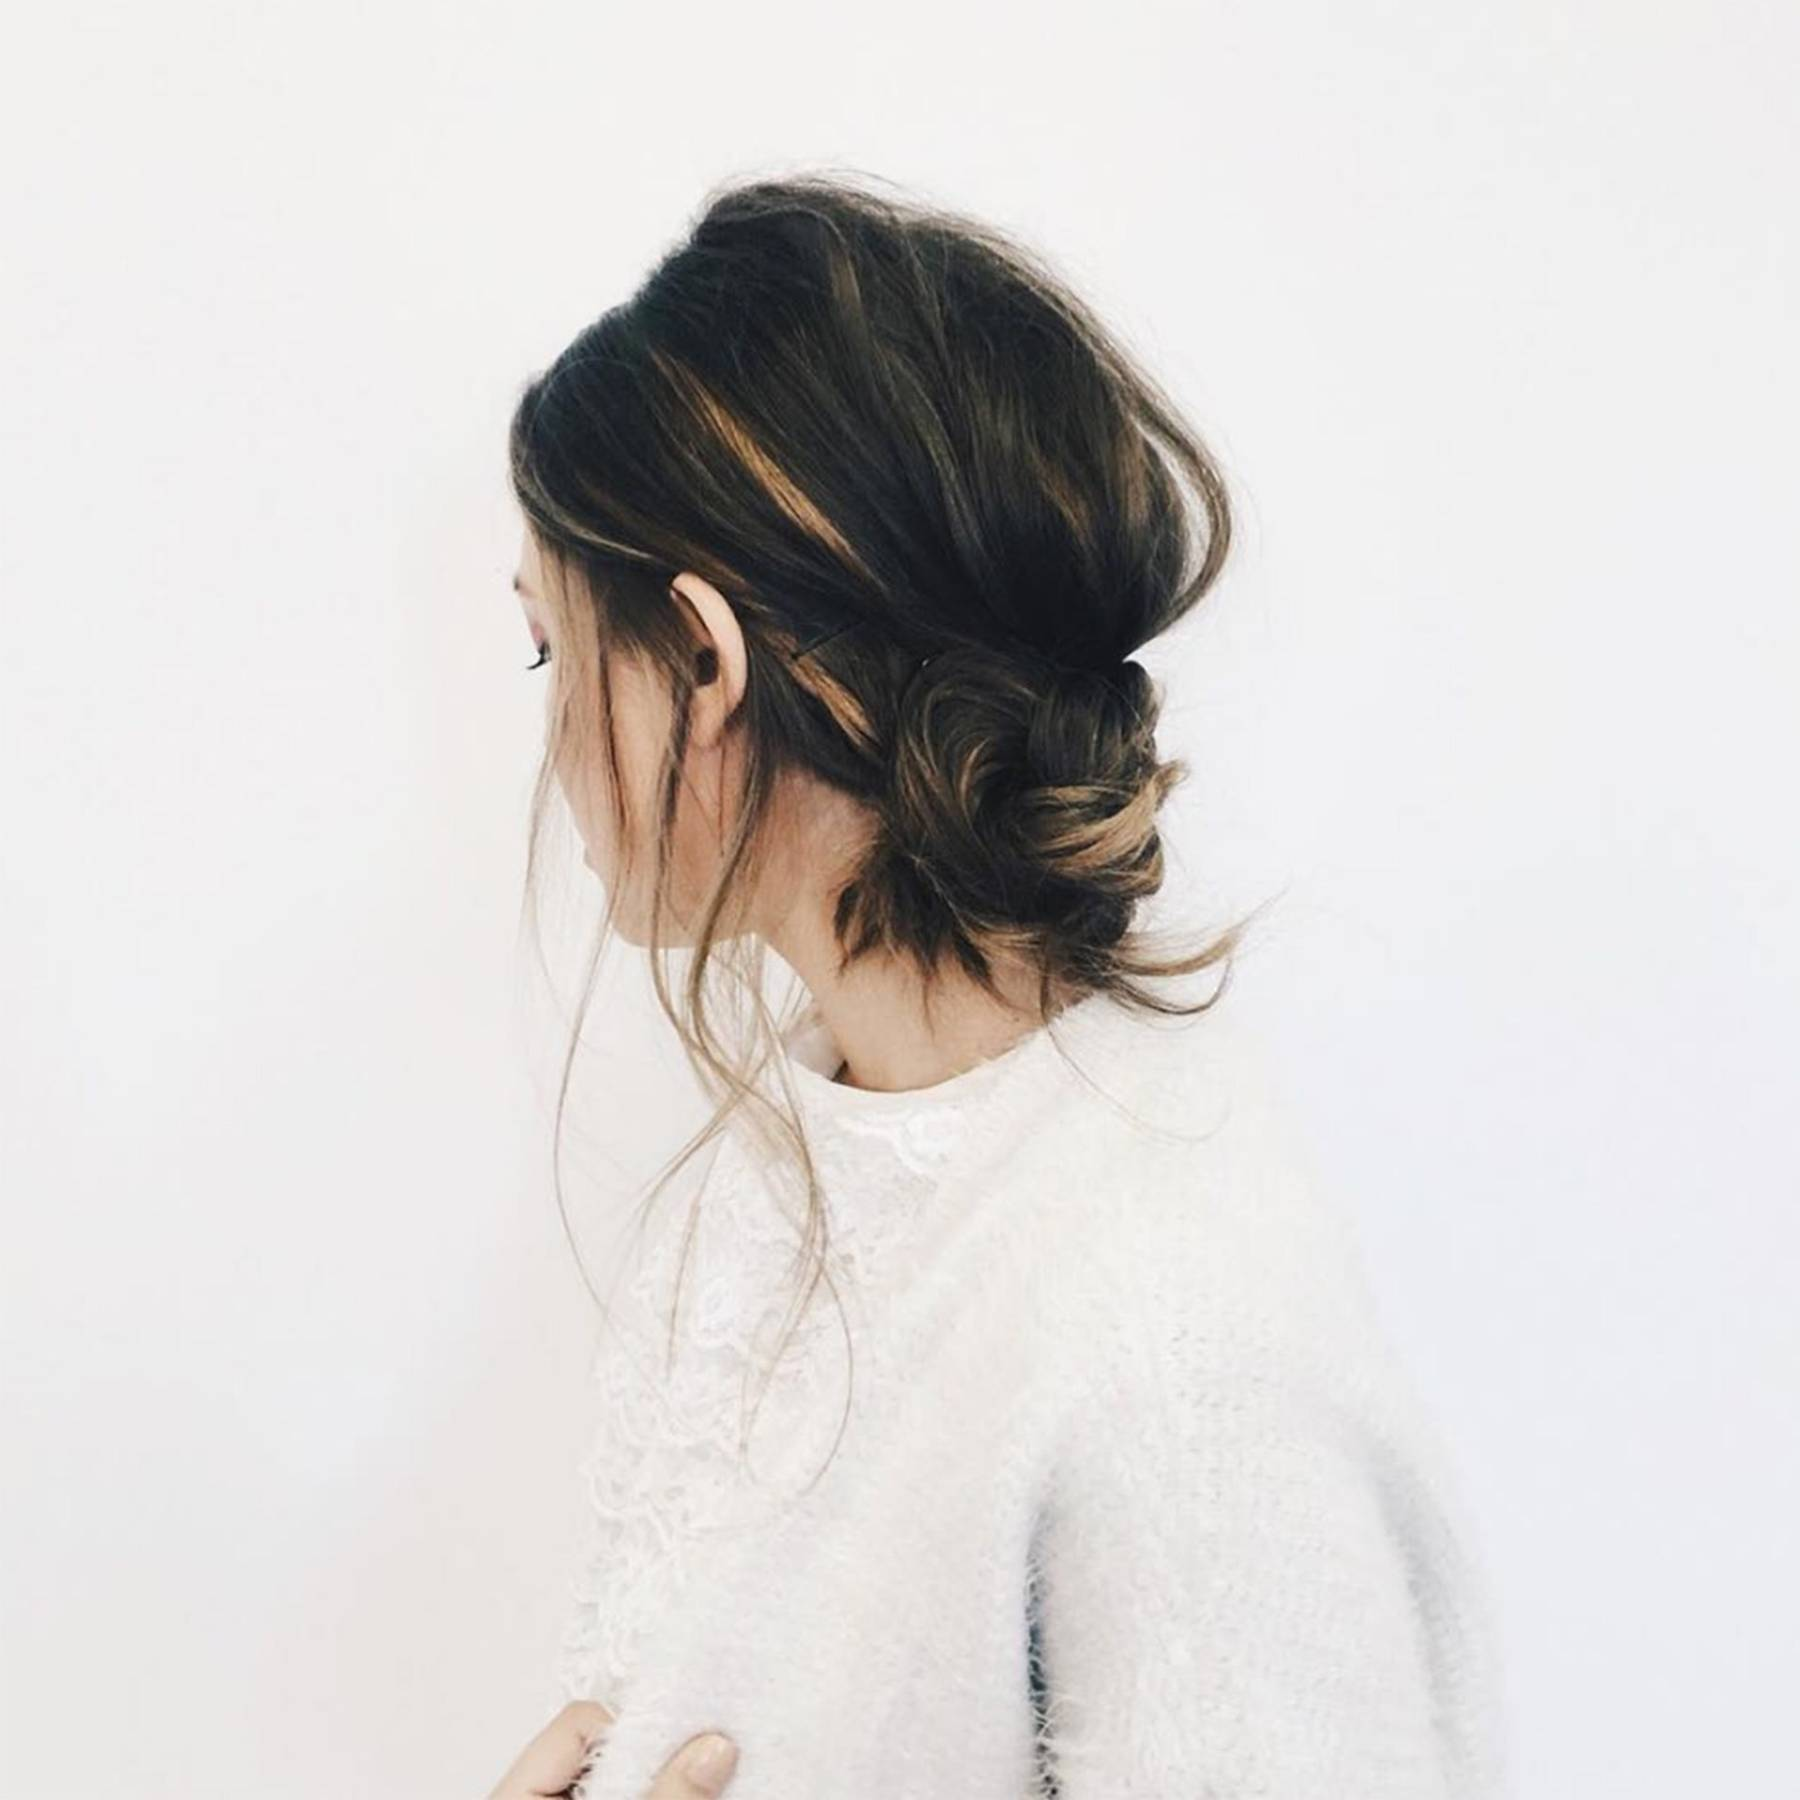 Easy hairstyle tutorials - twisted updo how-to   Glamour UK